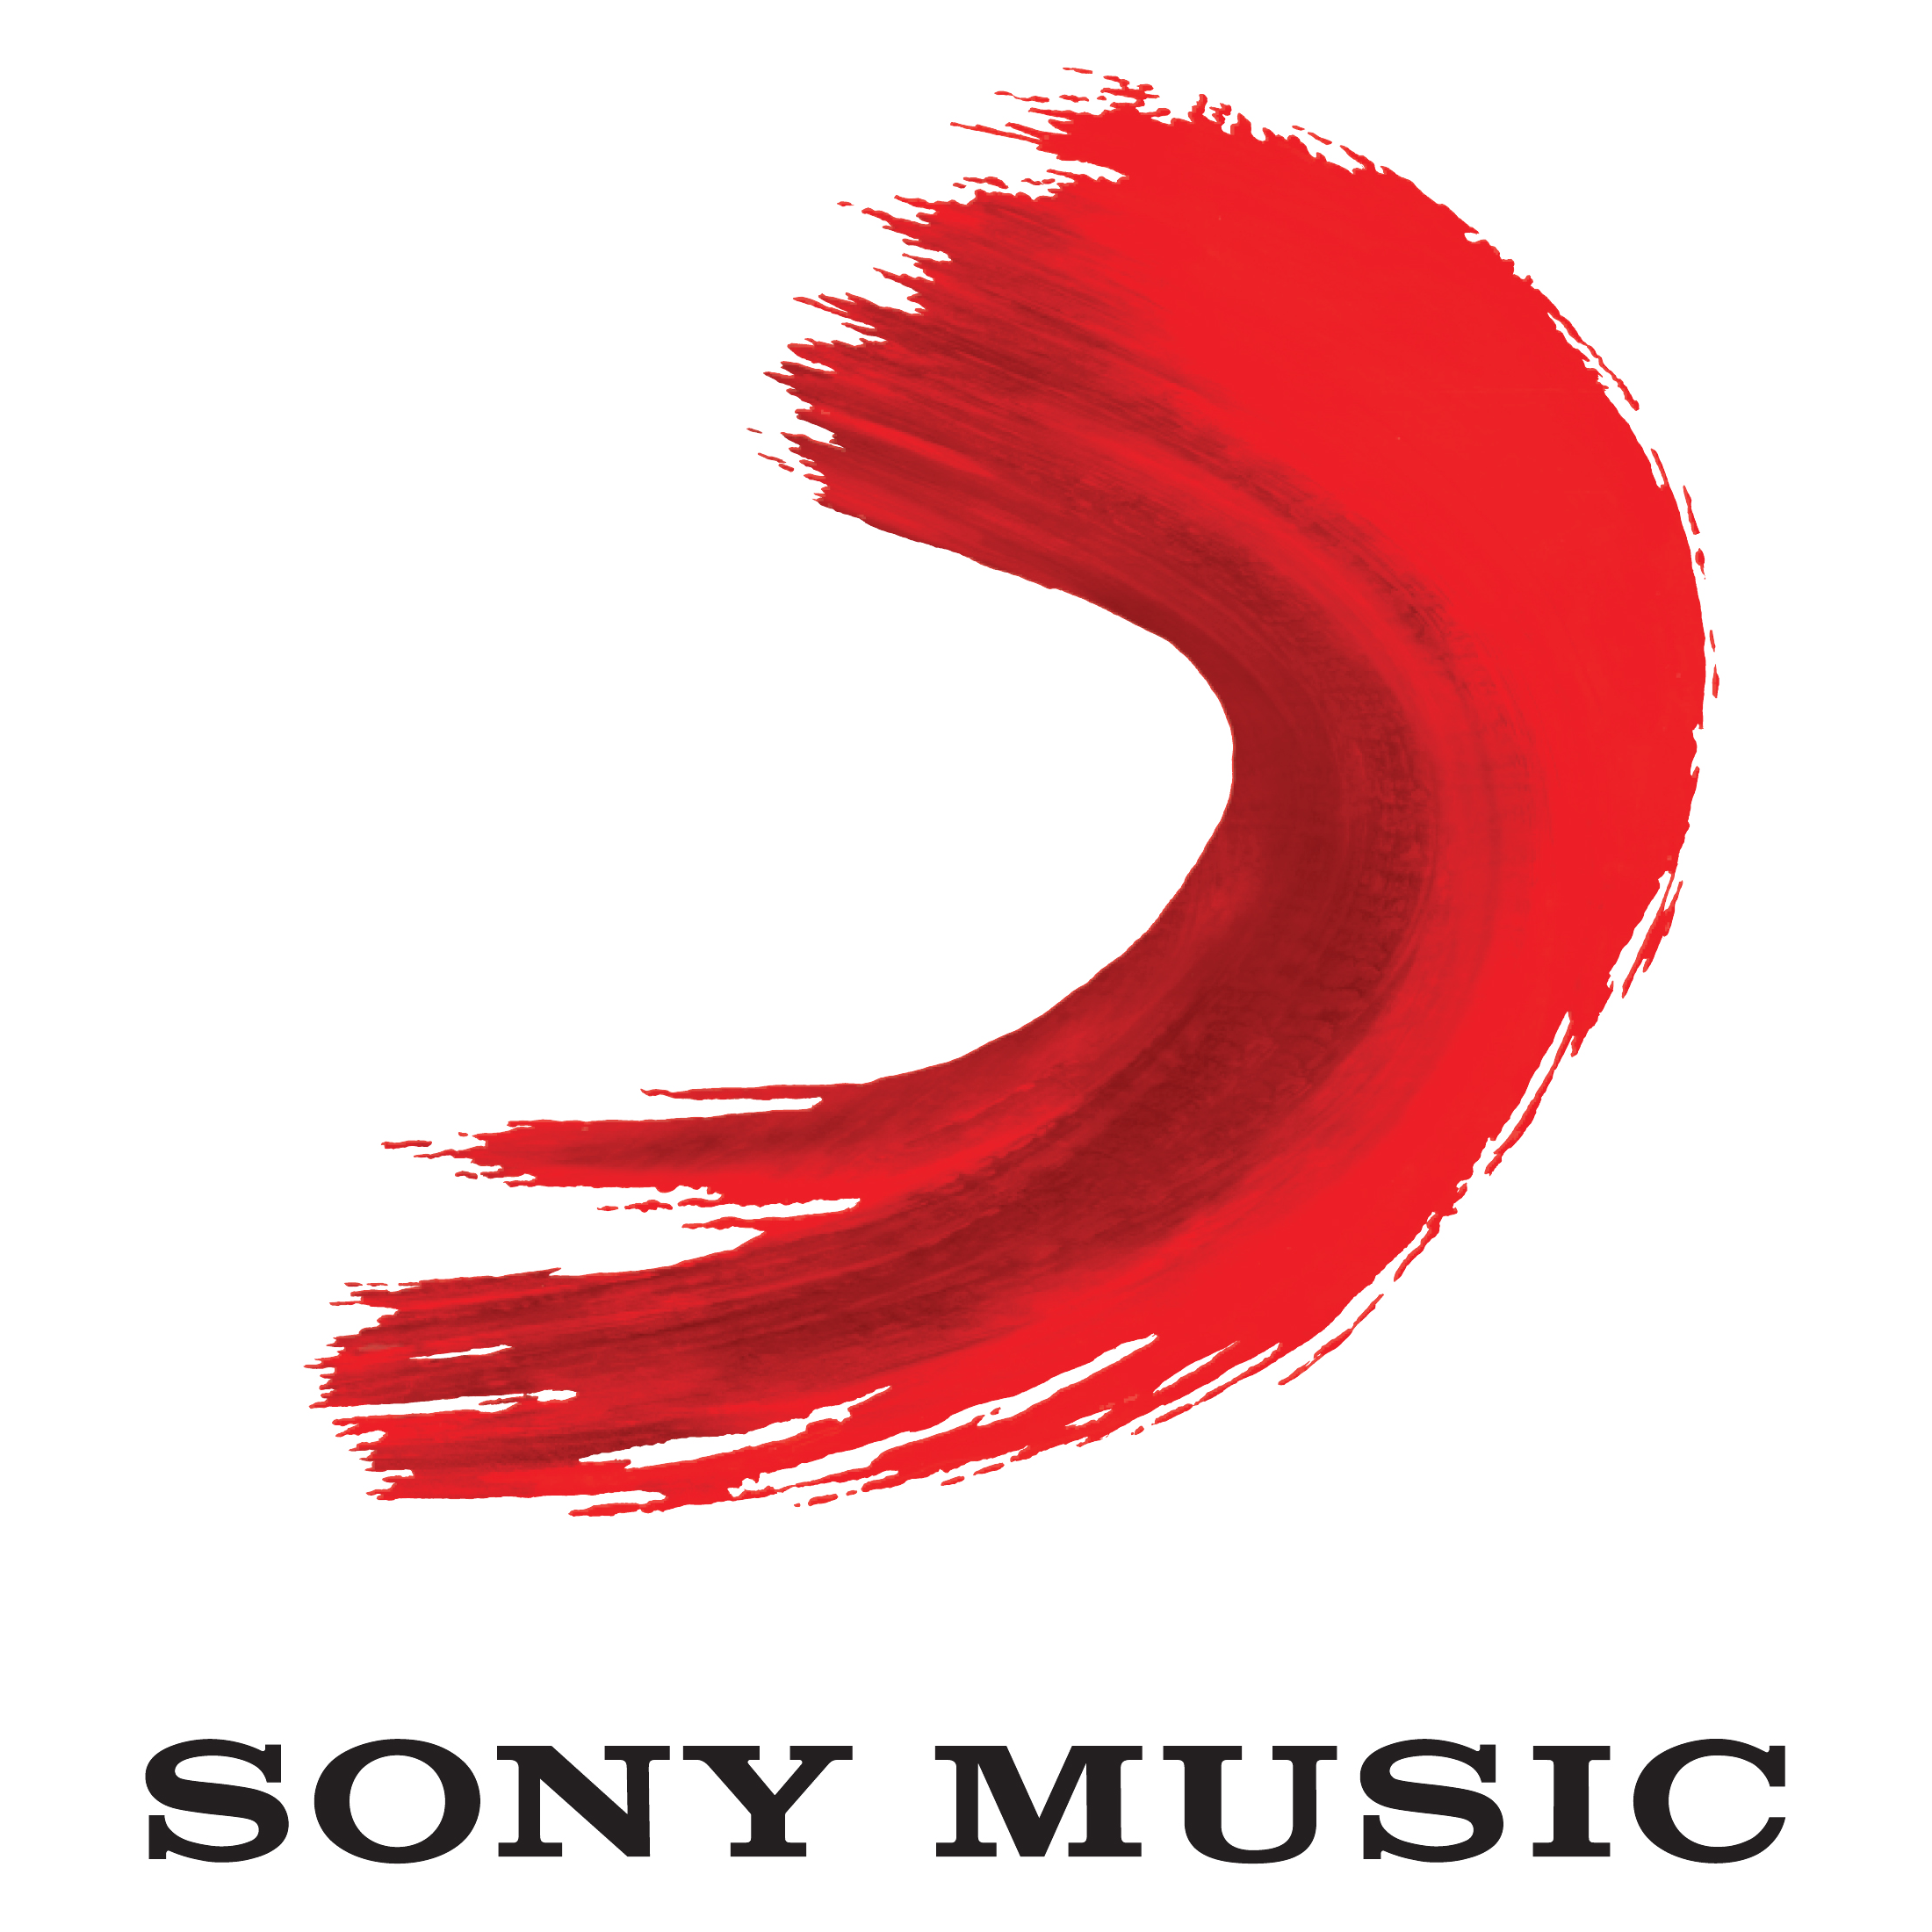 Sony-Music-logo-wordmark.png